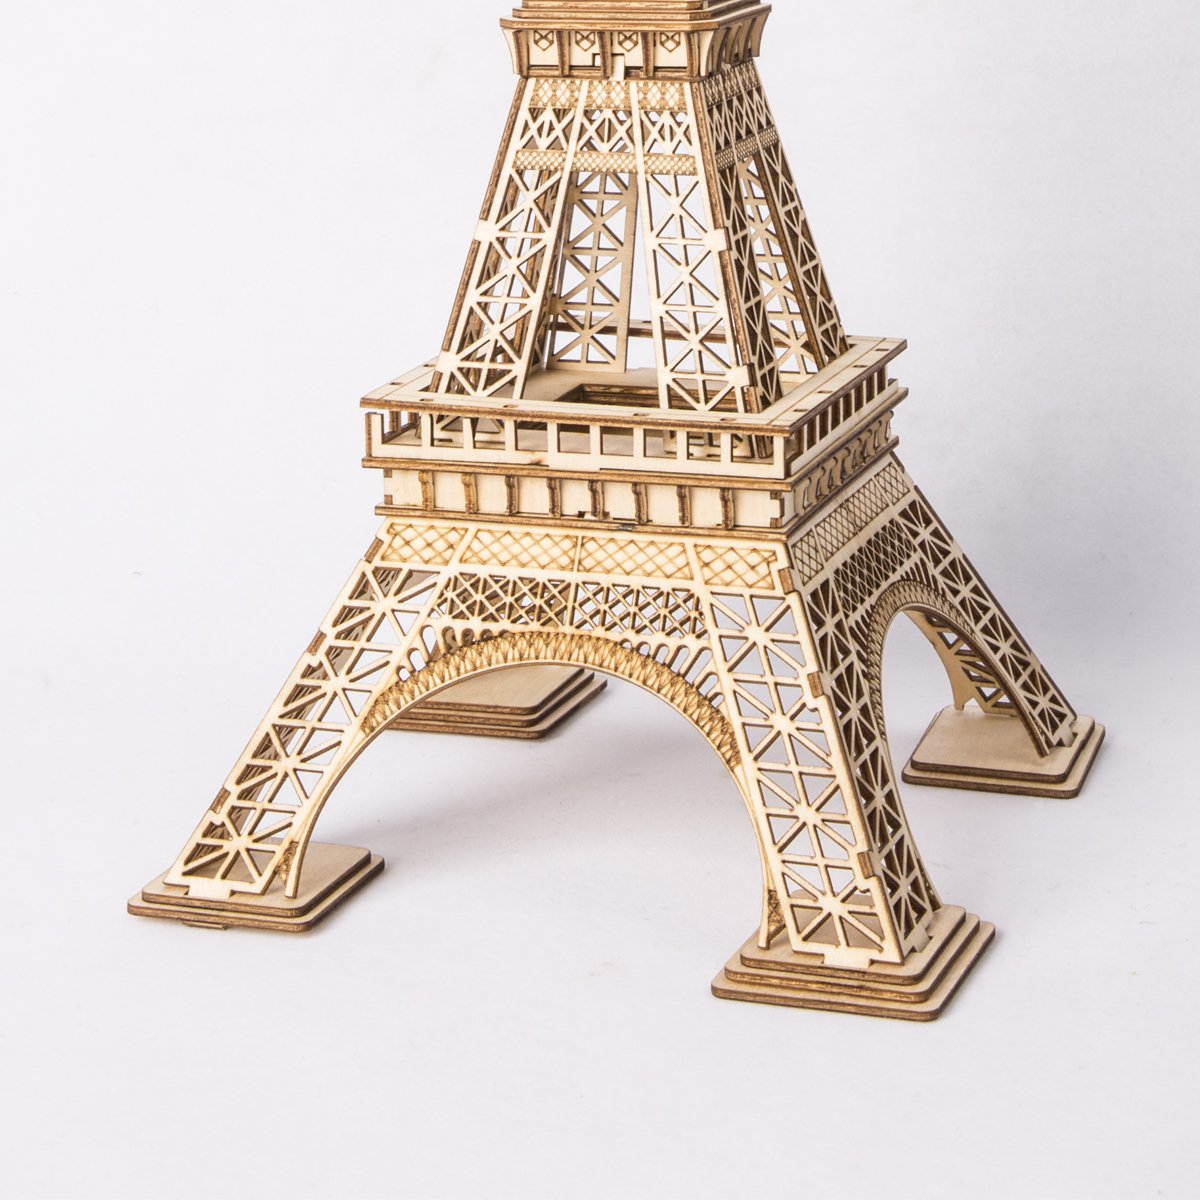 3D Wooden Puzzle DIY Assemble Toy-Buy 3+ Get EXTRA 30% OFF